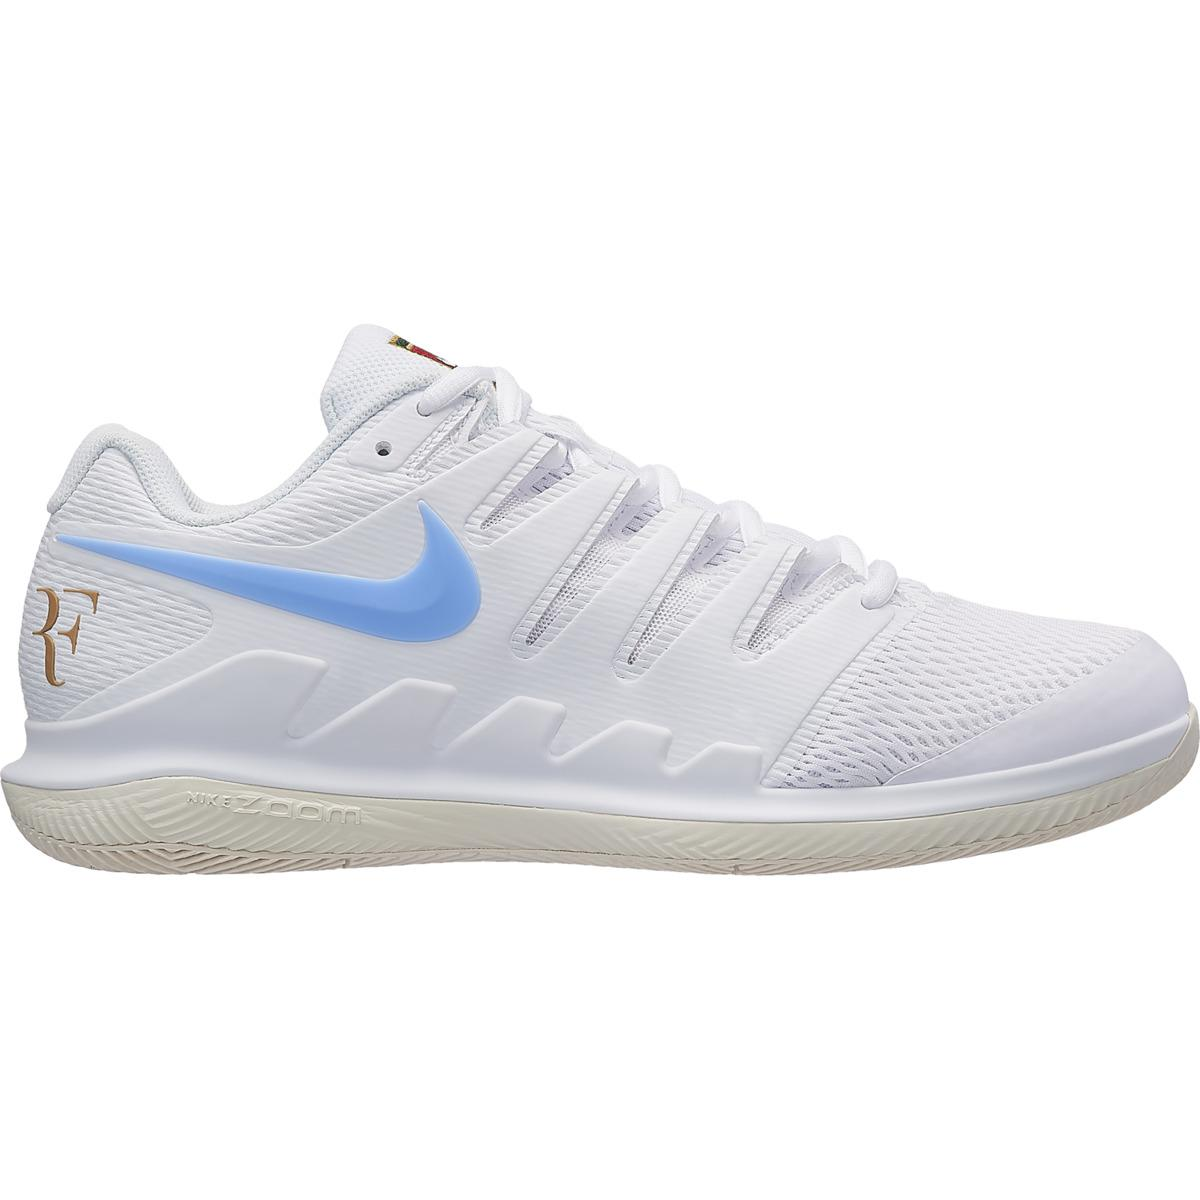 19f1356f6133 Nike. Men s Blue Air Zoom Vapor X Hc Tennis Shoes. £112 From El Corte Ingles